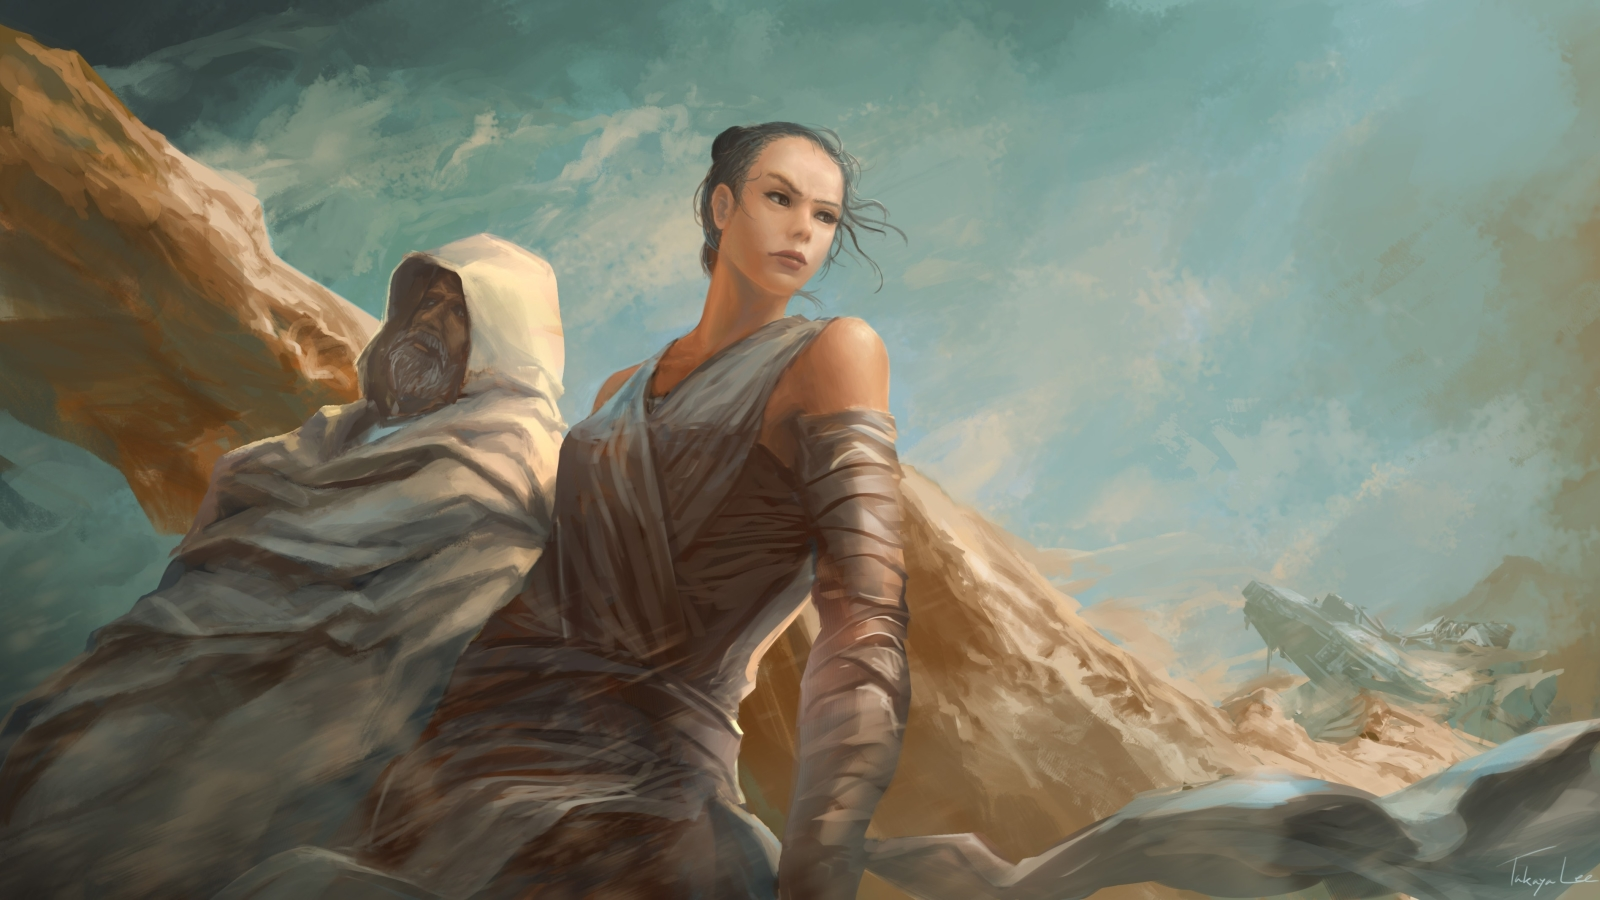 1600x900 Luke Skywalker And Rey 1600x900 Resolution Wallpaper Hd Artist 4k Wallpapers Images Photos And Background